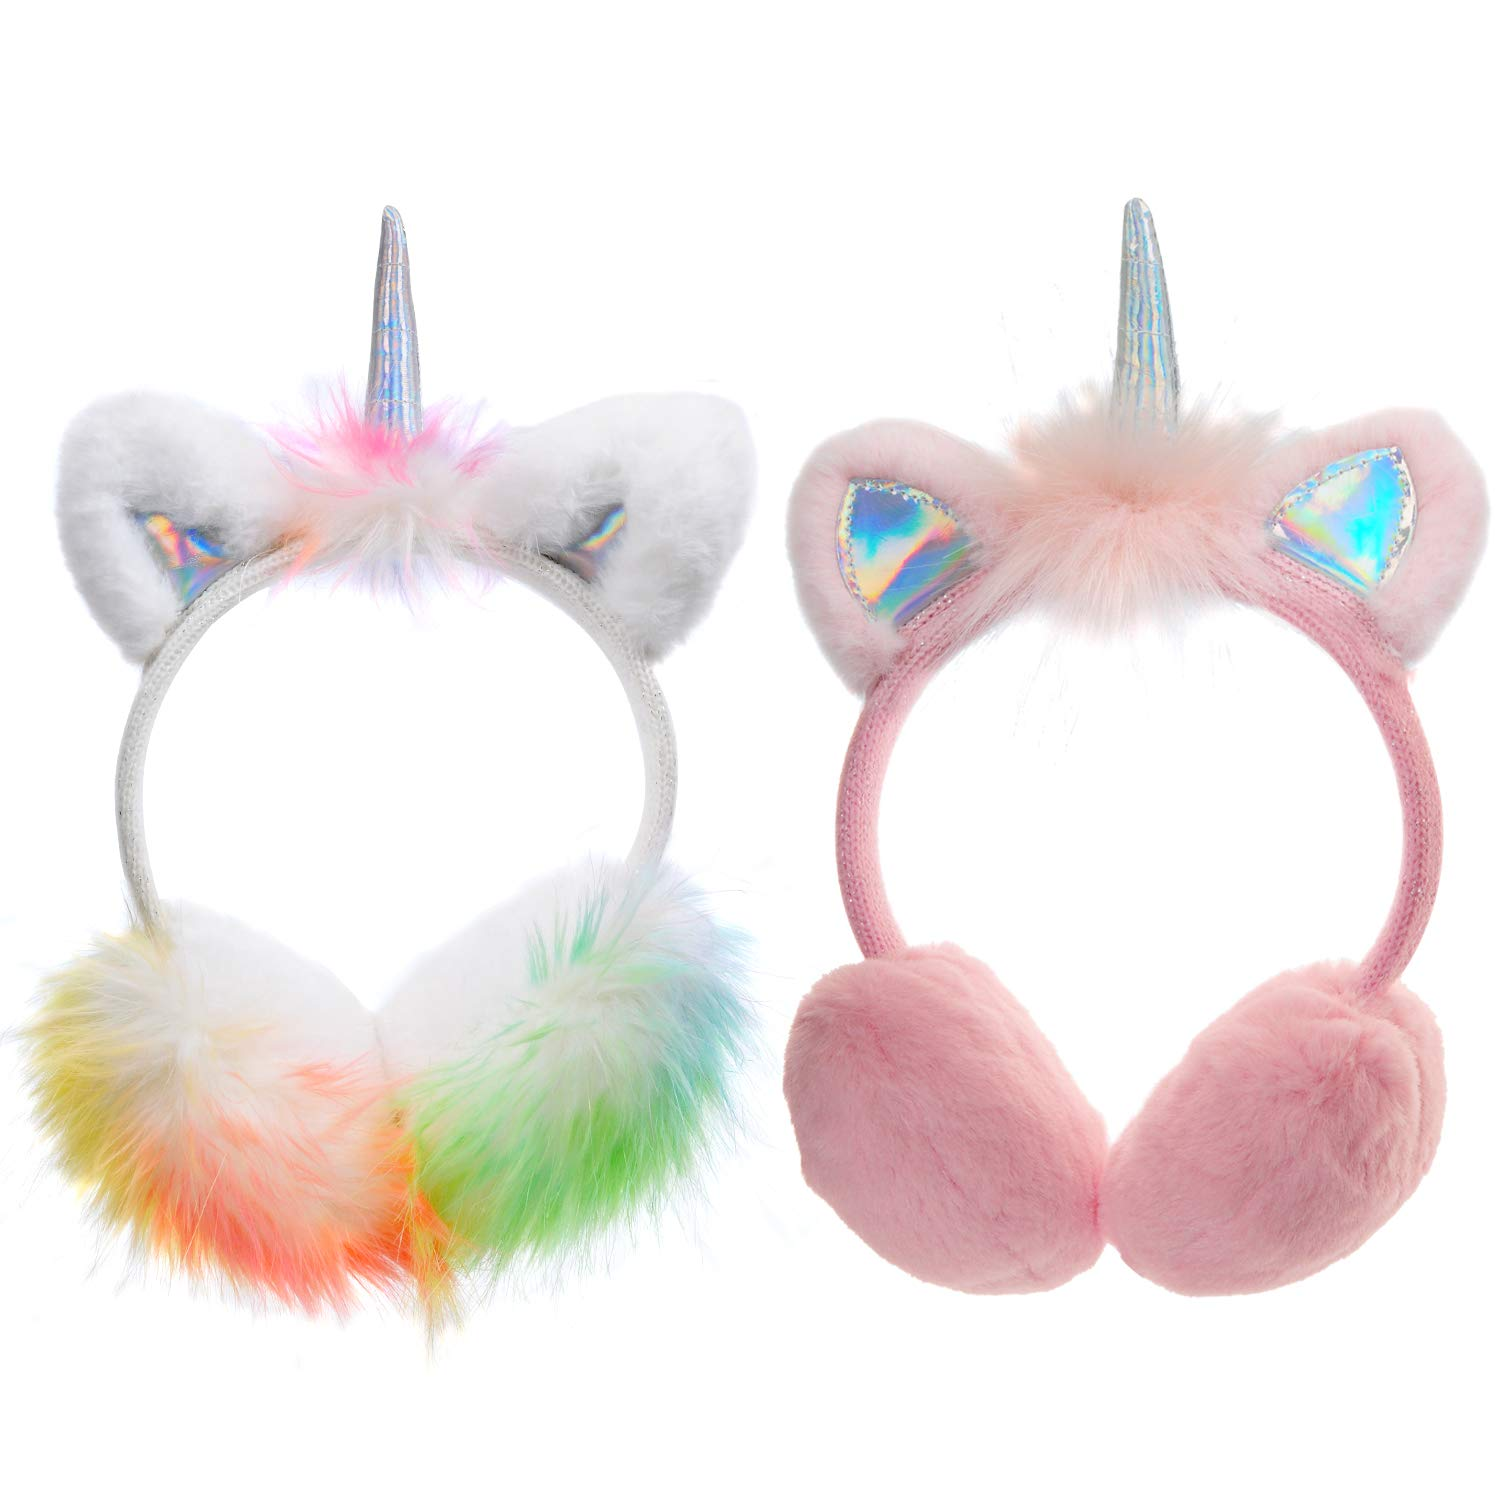 2-Pack Kids Girls Unicorn Horn Fleece Earmuffs Earwarmer Adjustable Winter Ear Muffs for Children 3-14 Years